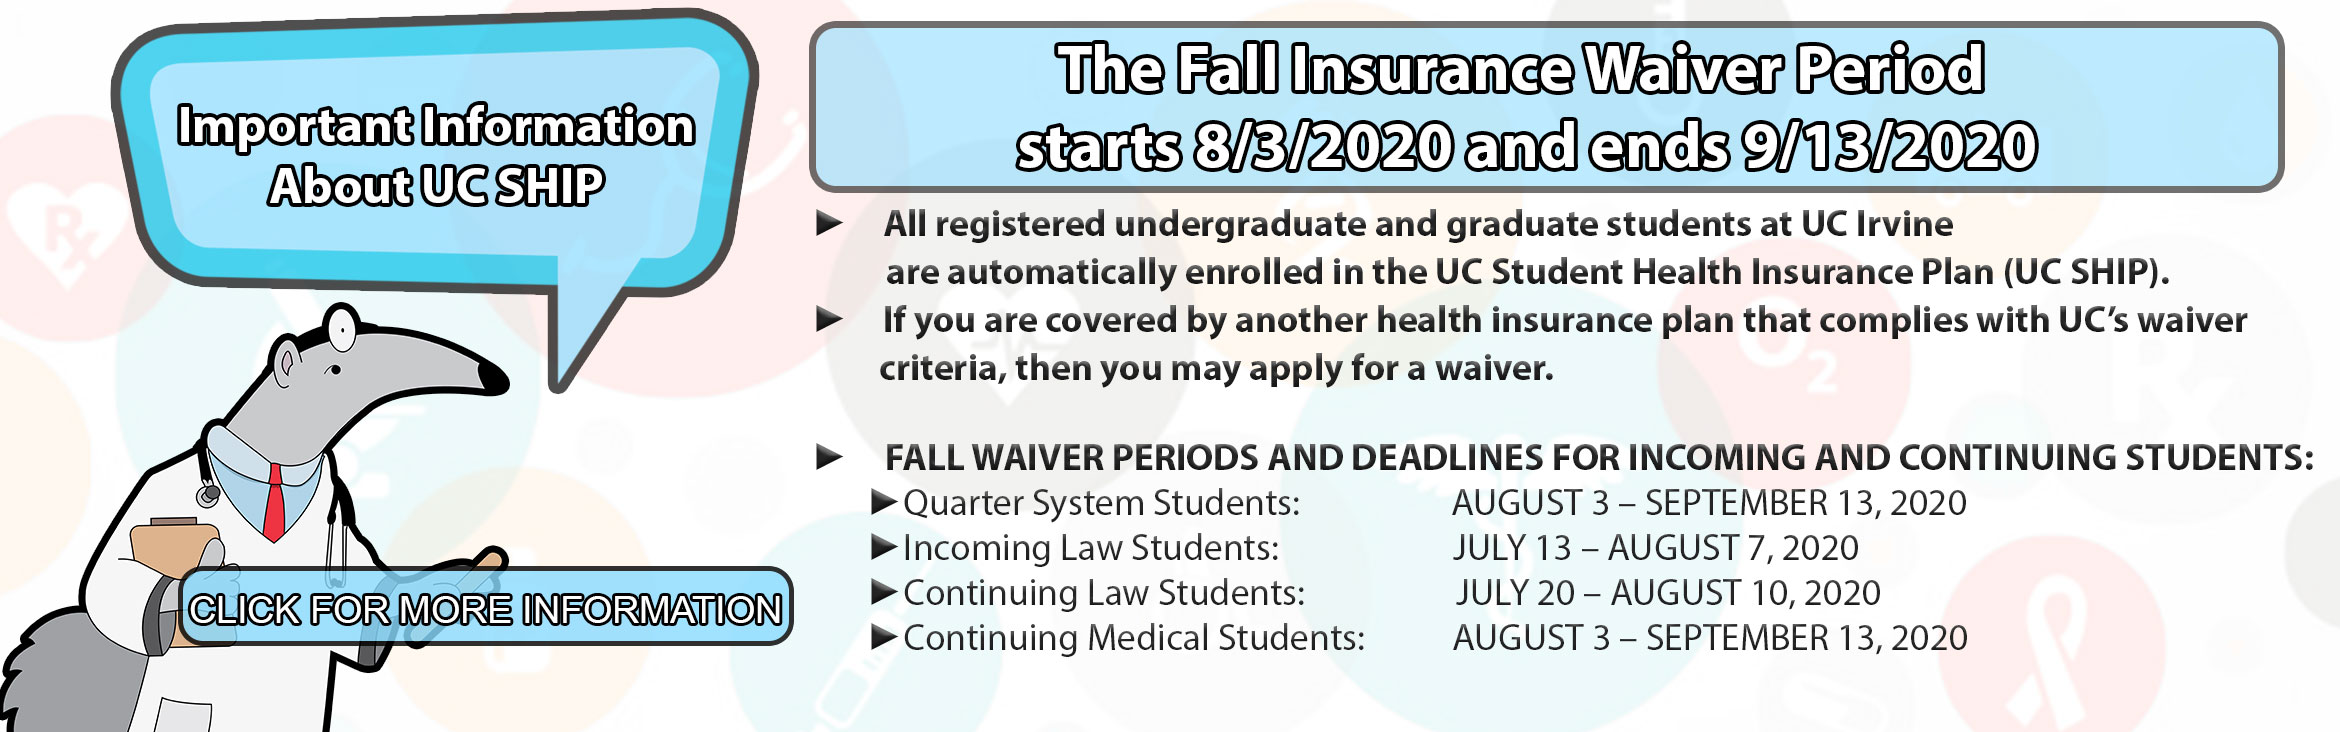 The Fall Insurance Waiver period starts 8/3/2020 and ends 9/13/2020